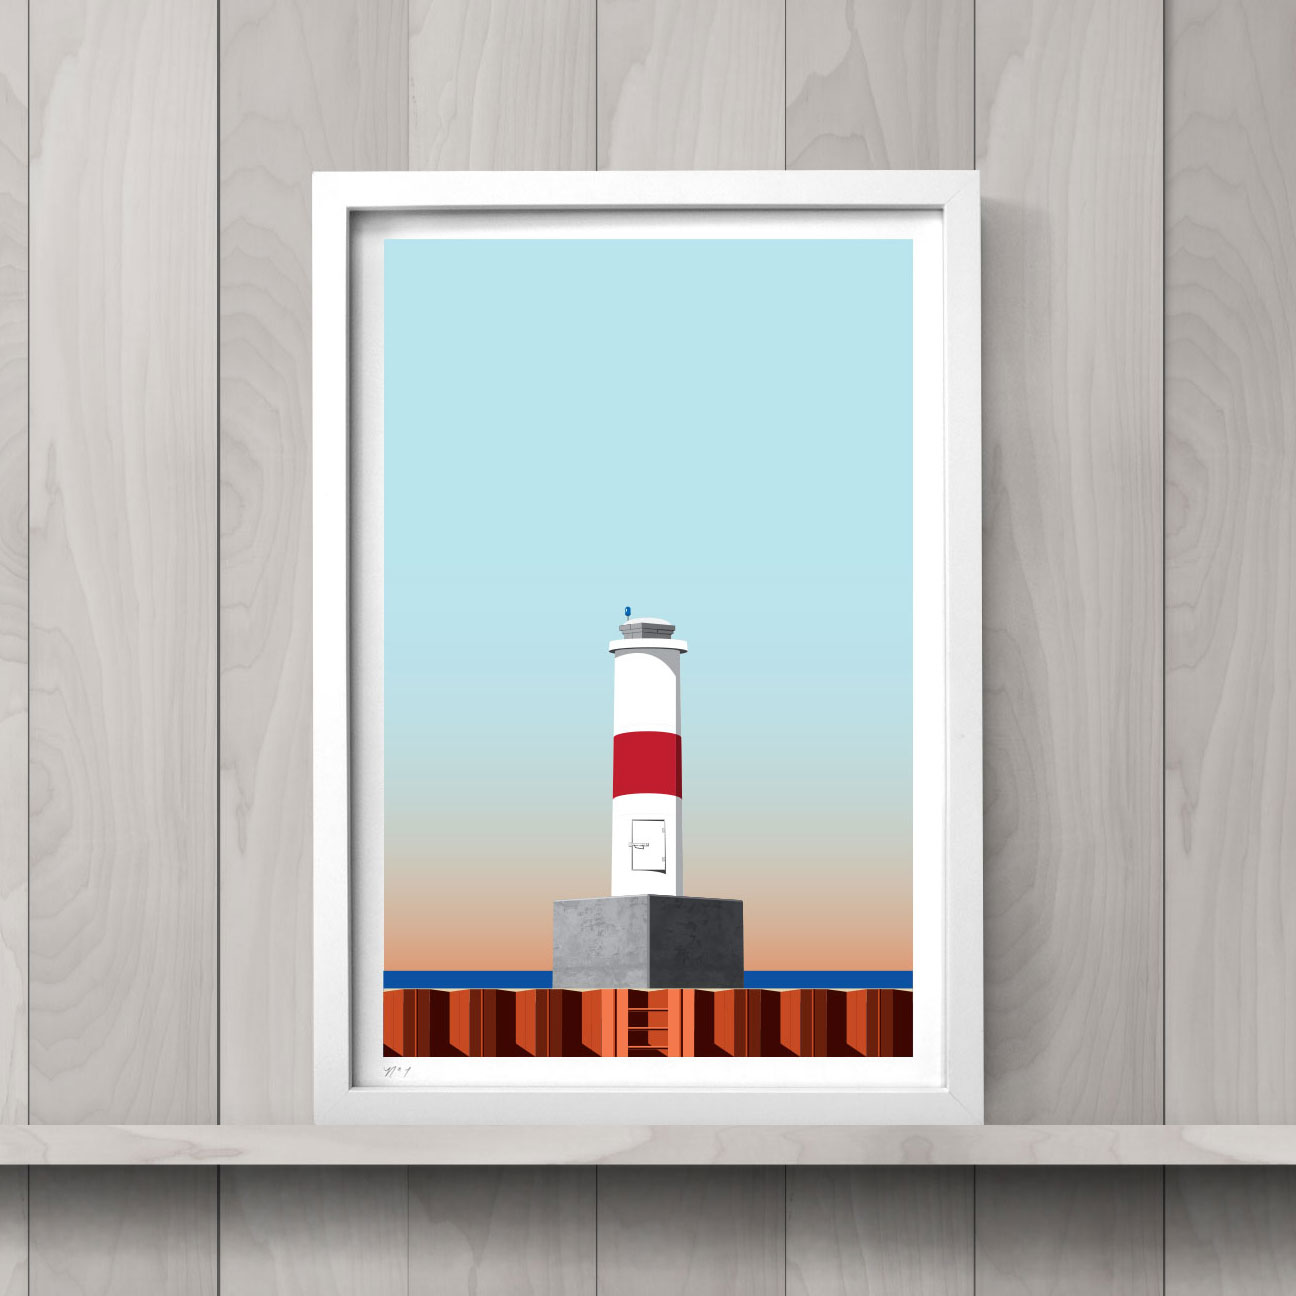 The Petoskey Lighthouse   art print is an hand-numbered open edition run.